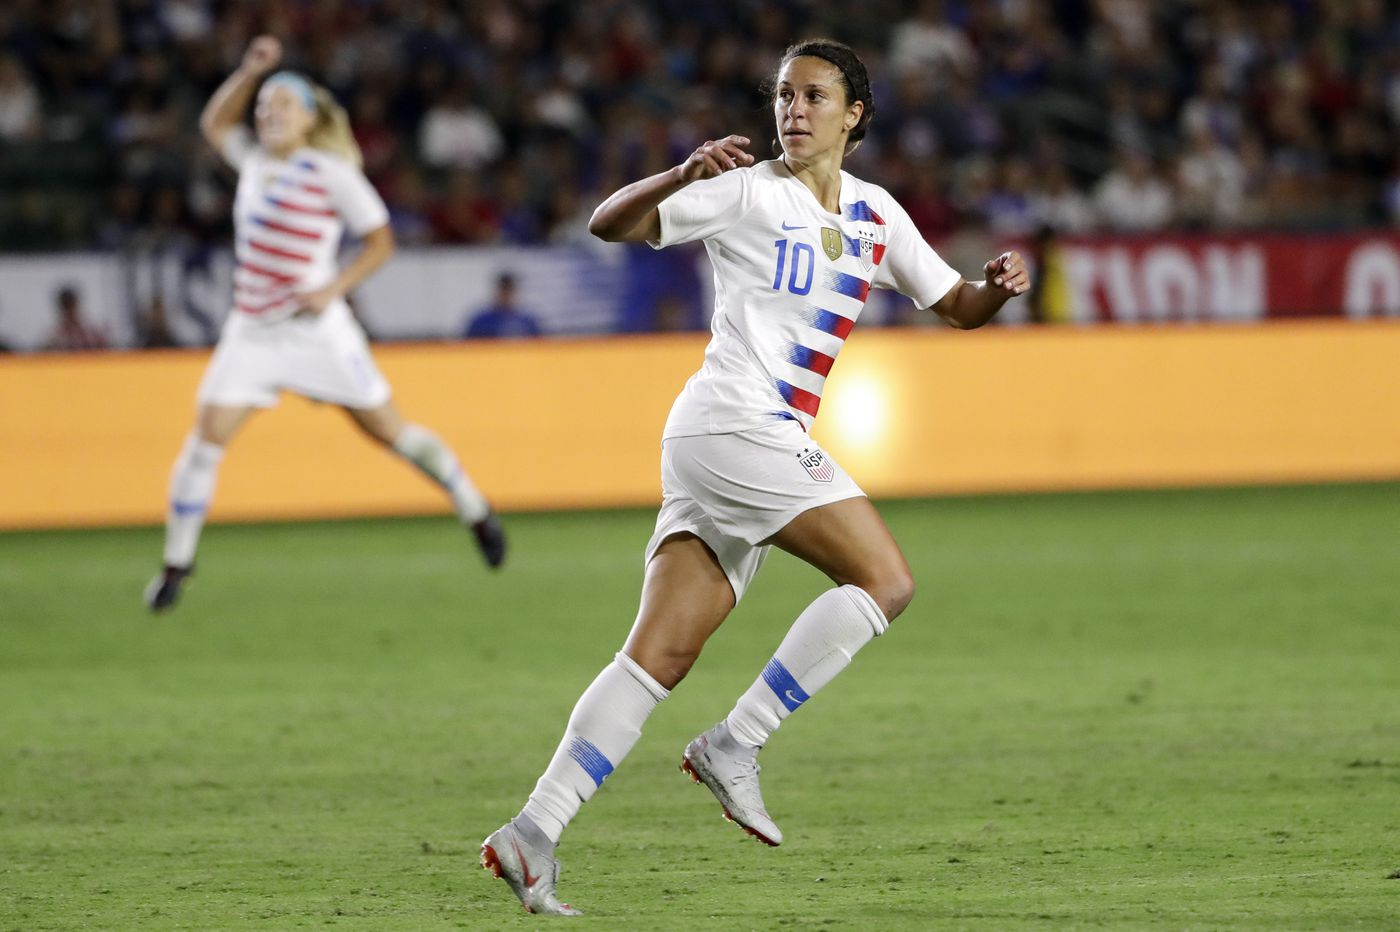 816477e65 Carli Lloyd hat trick helps U.S. women s national team rout Panama 5-0 in  World Cup qualifying